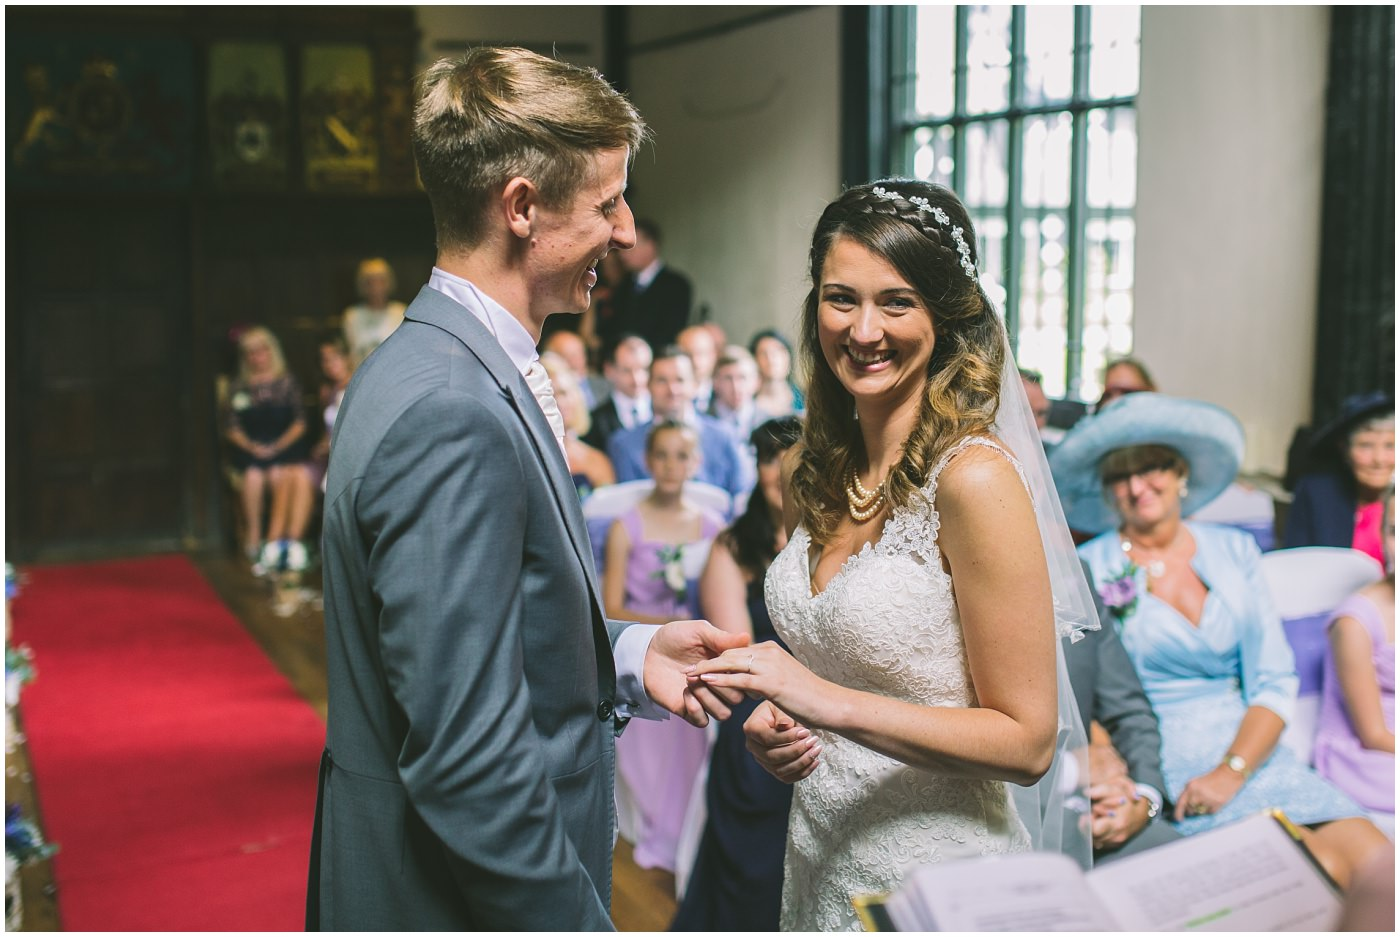 bride smiles during wedding ceremony at Samlesbury hall